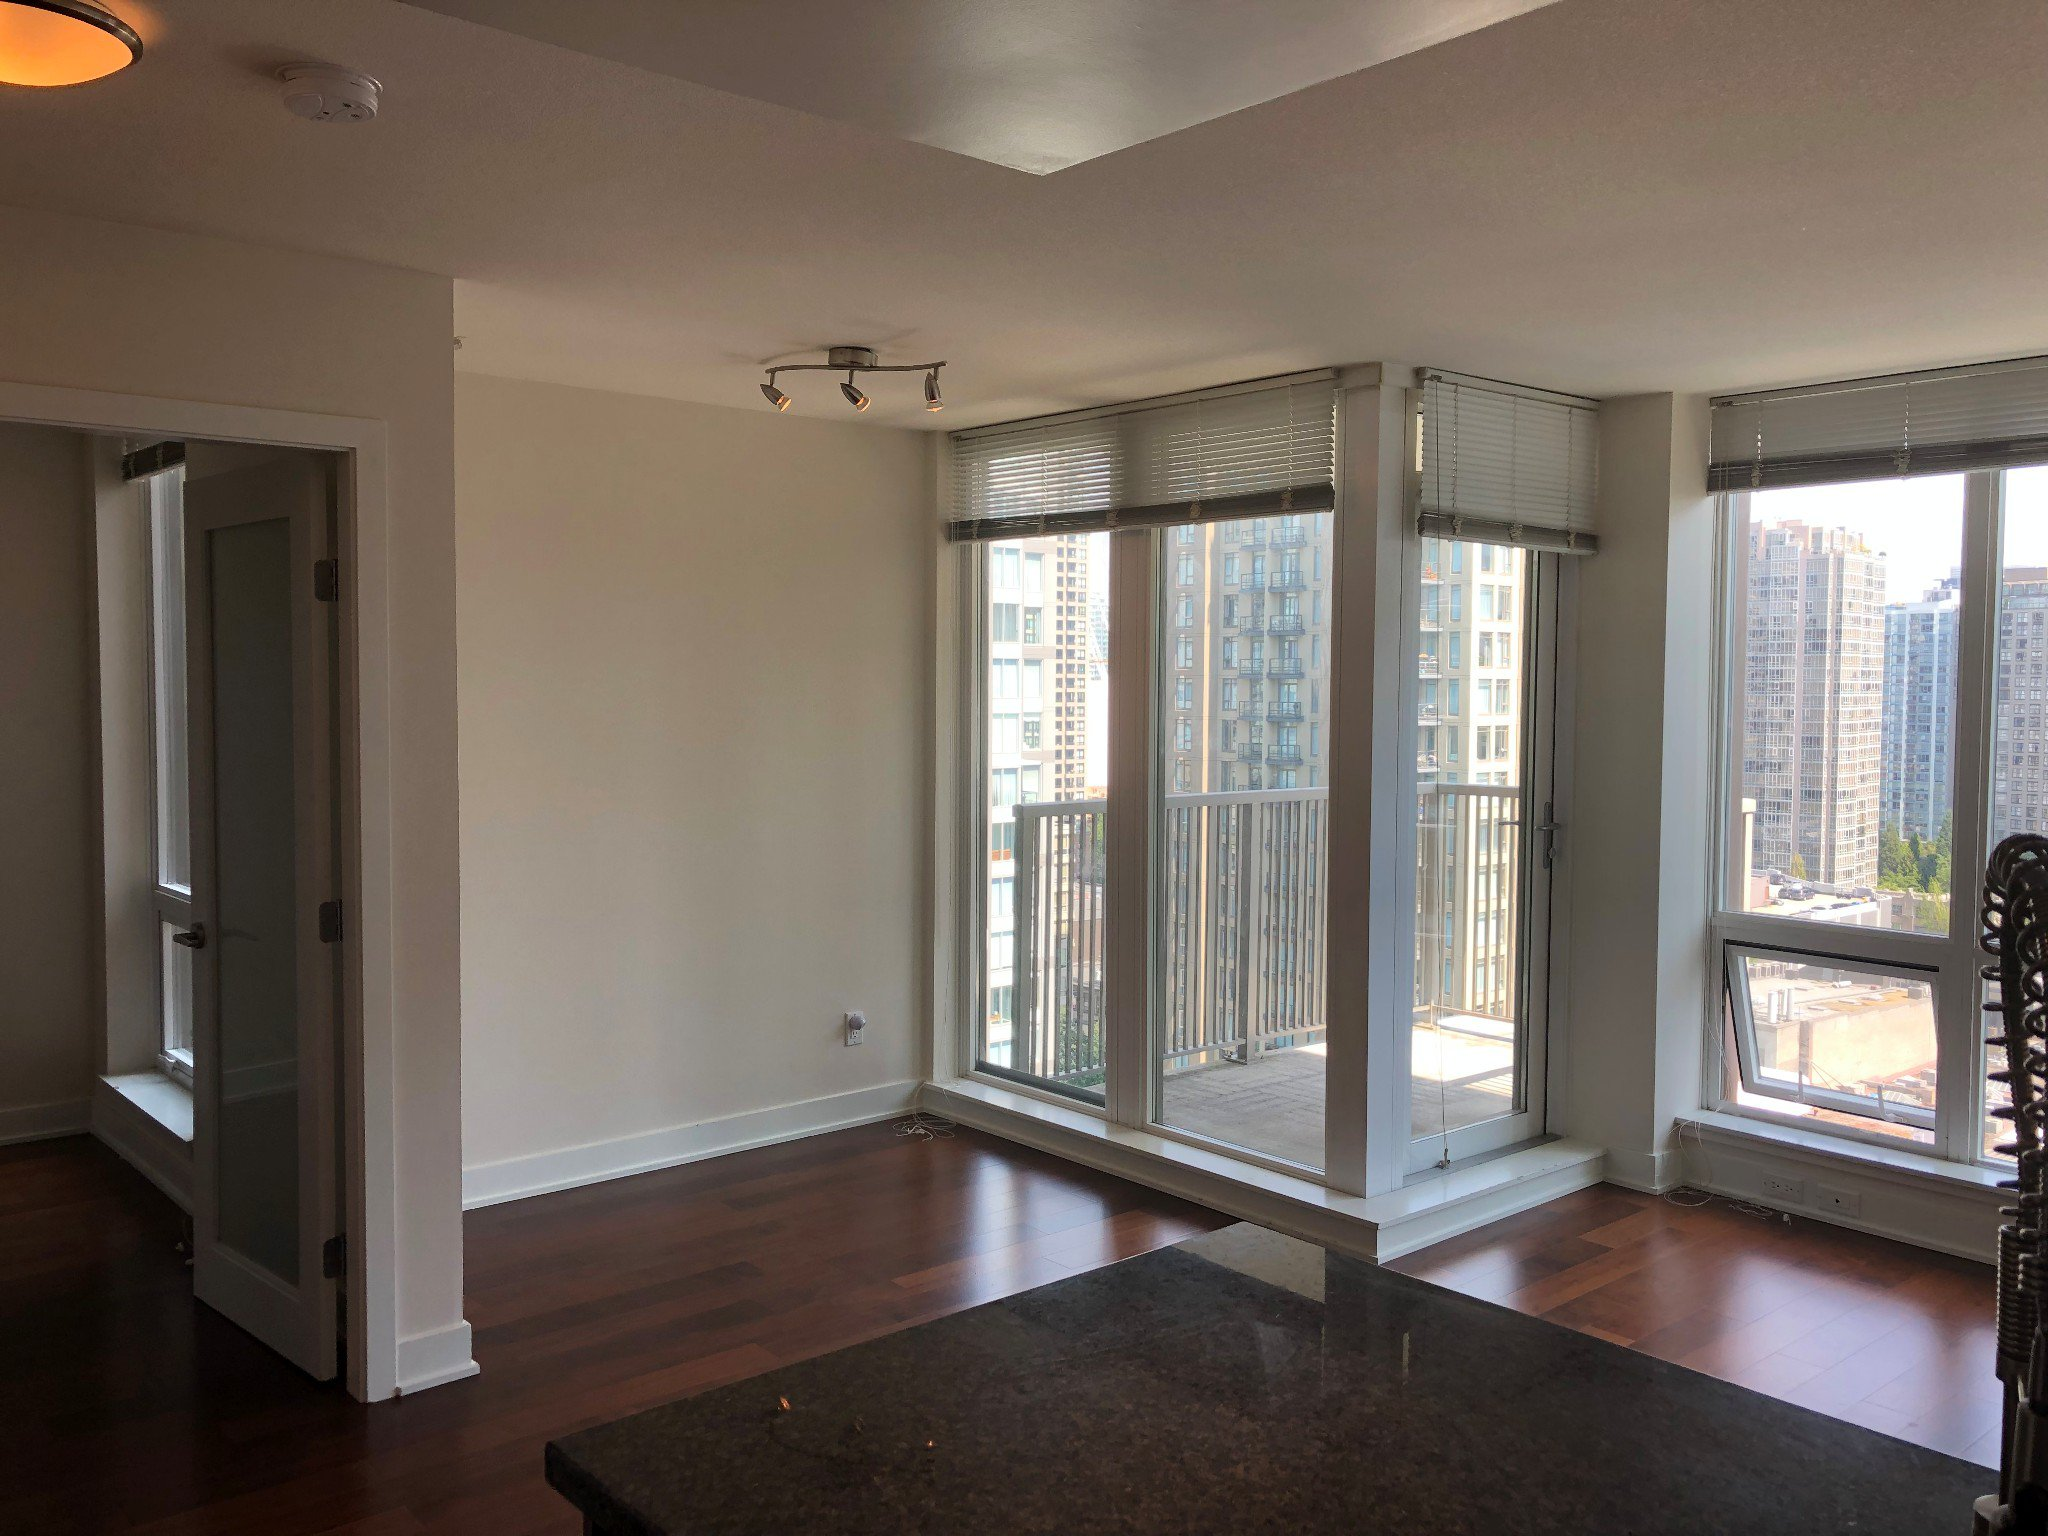 Photo 11: Photos: 1708-1055 Richards St in Vancouver: Yaletown Condo for rent (Downtown Vancouver)